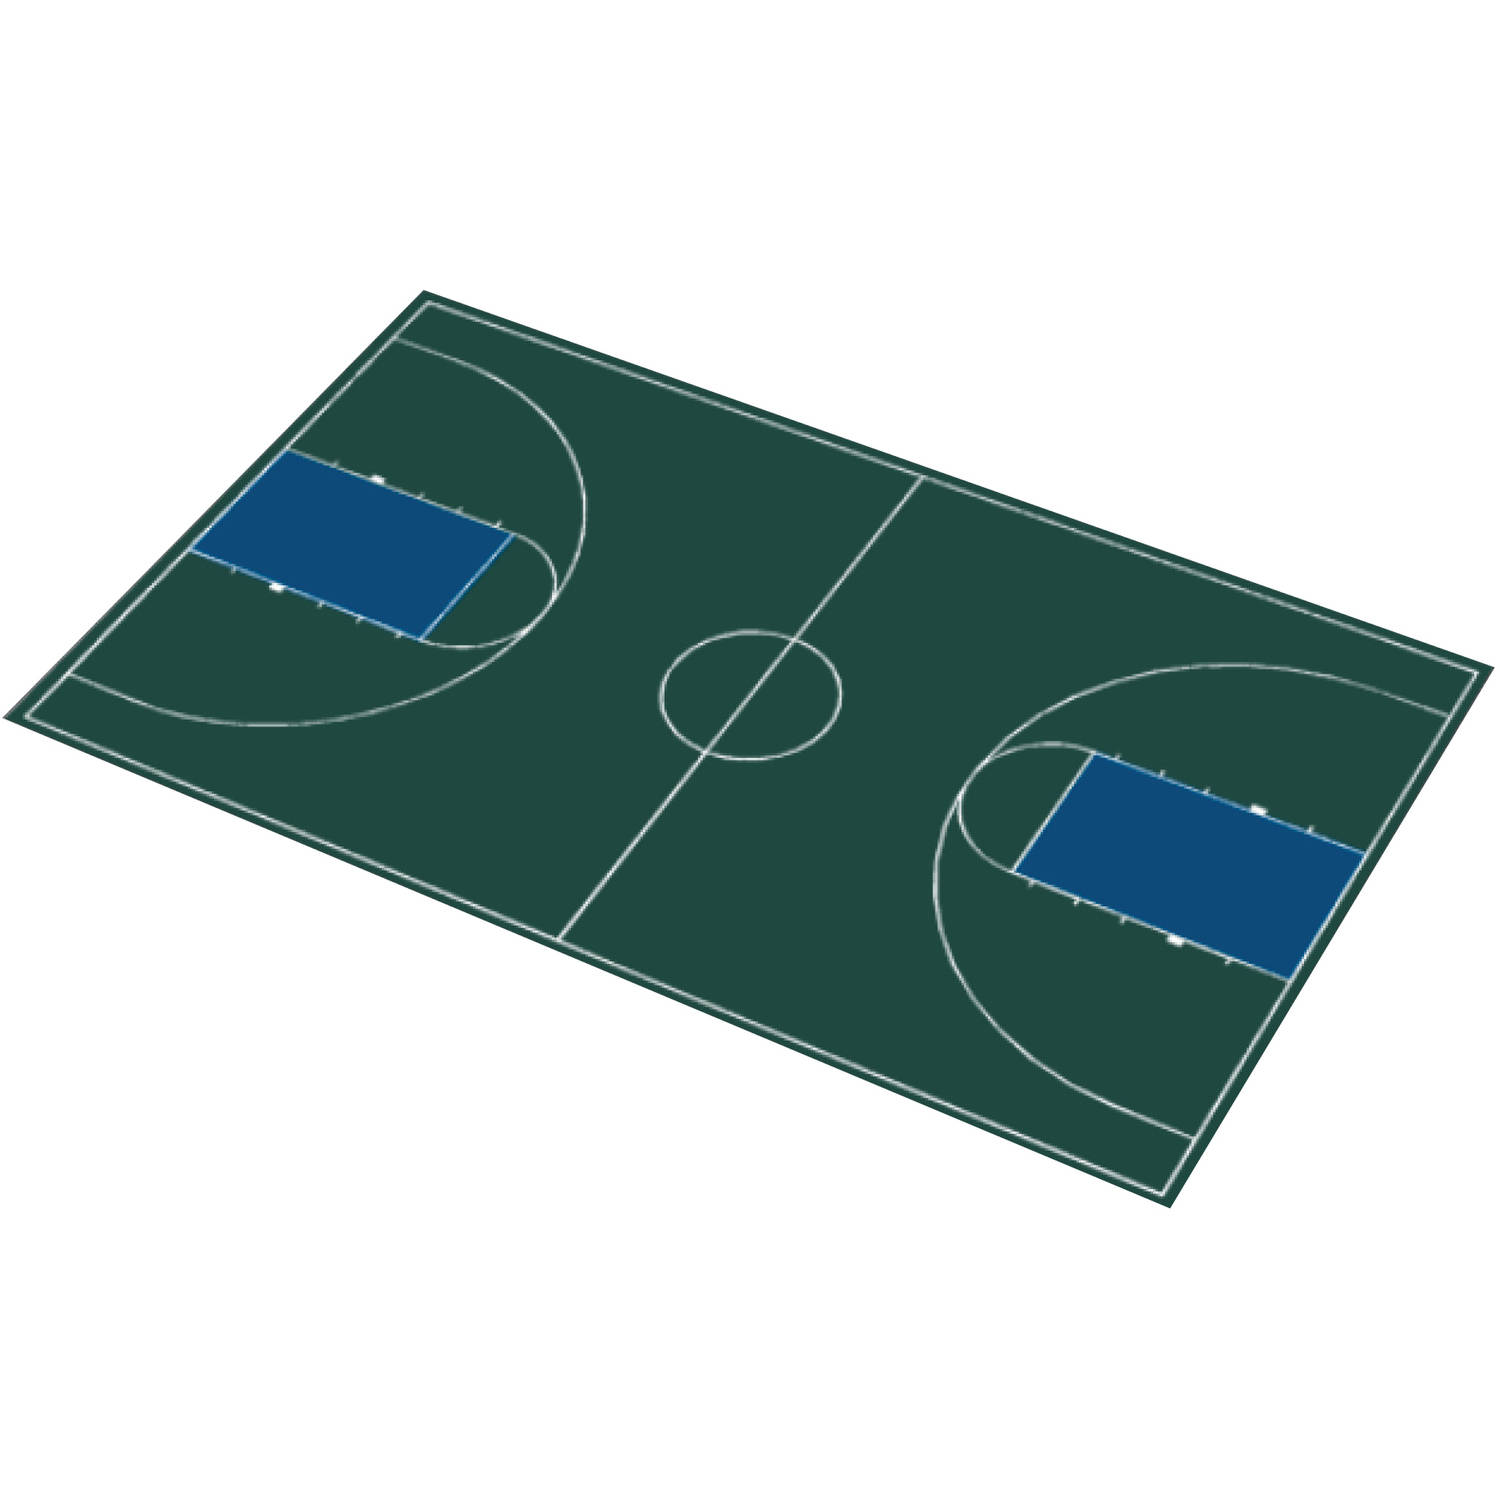 """DuraPlay Full Court Basketball Kit, 51' x 83'11"""", Hunter Green and Navy Blue"""